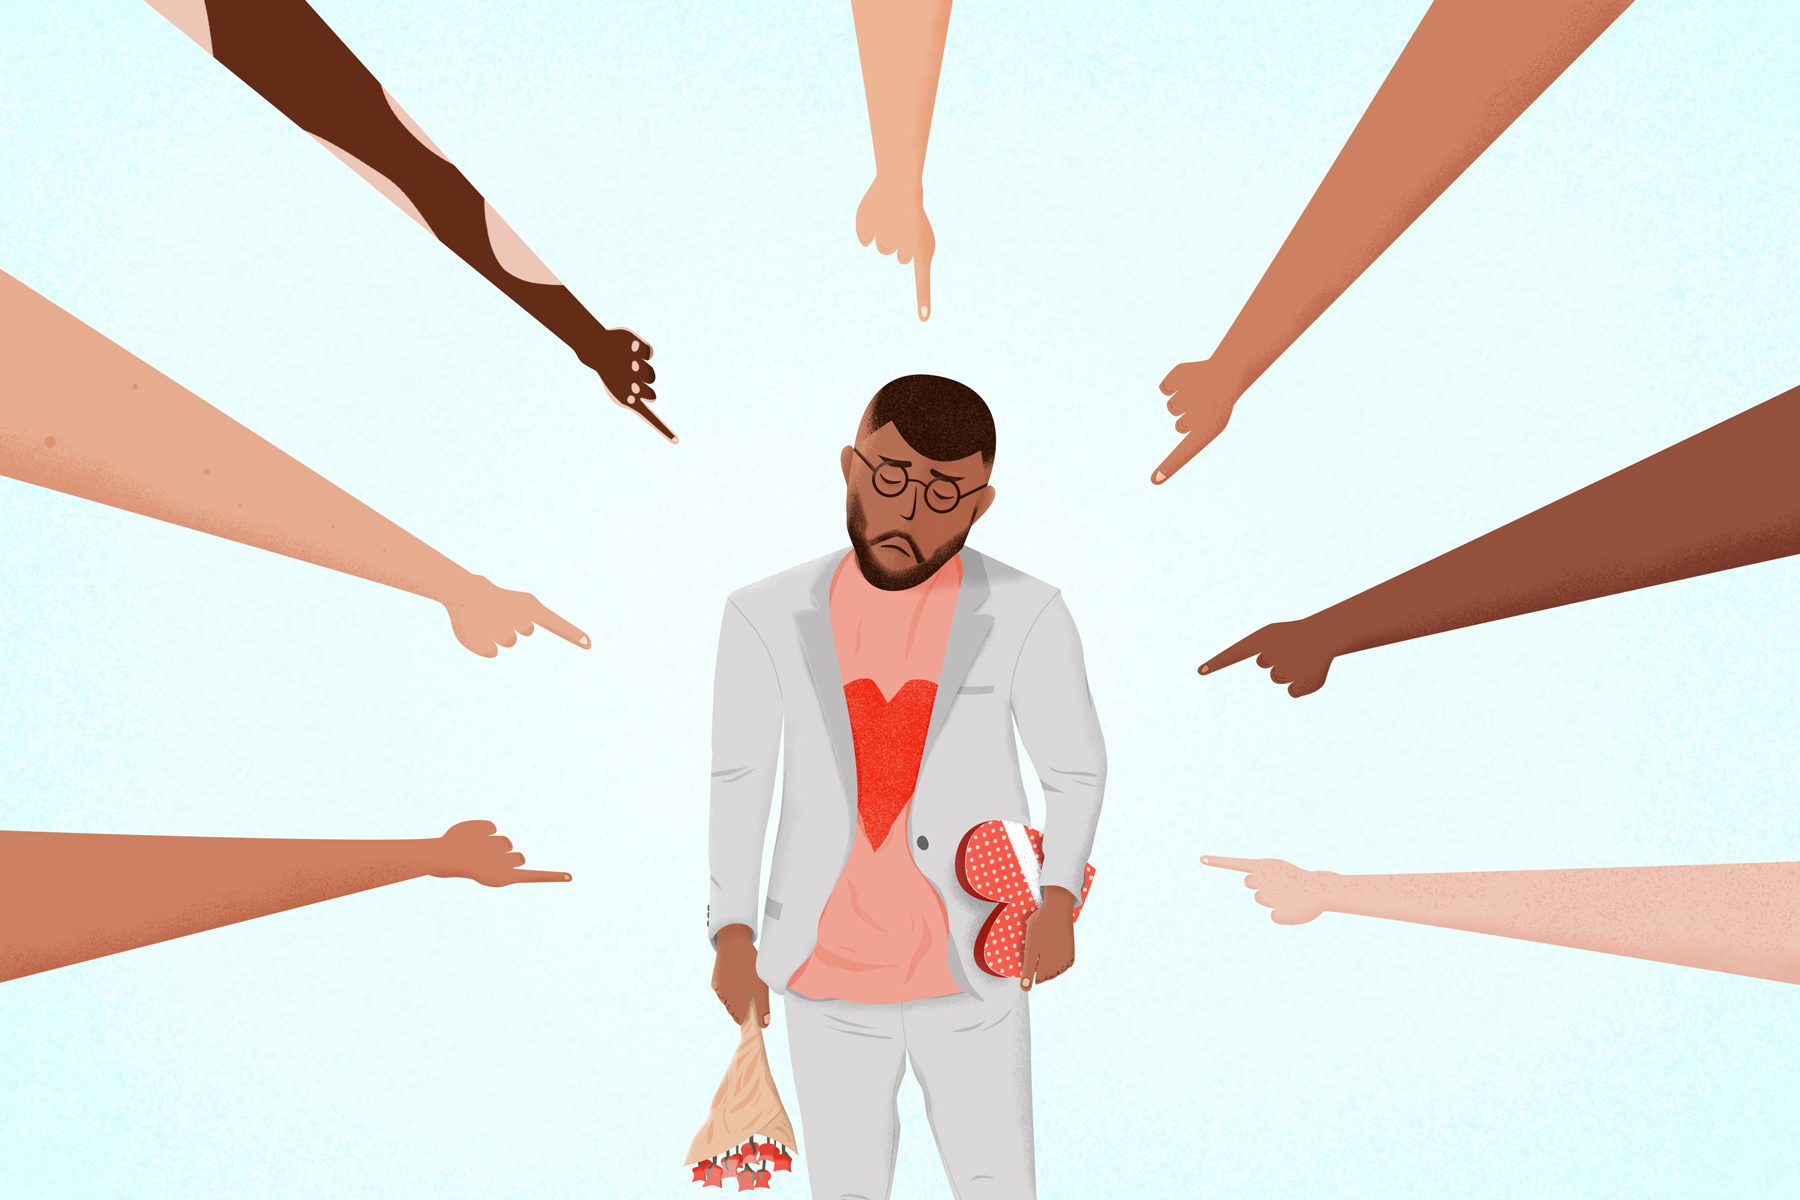 An image for an article about simp culture. Illustrated by Adam Lee.